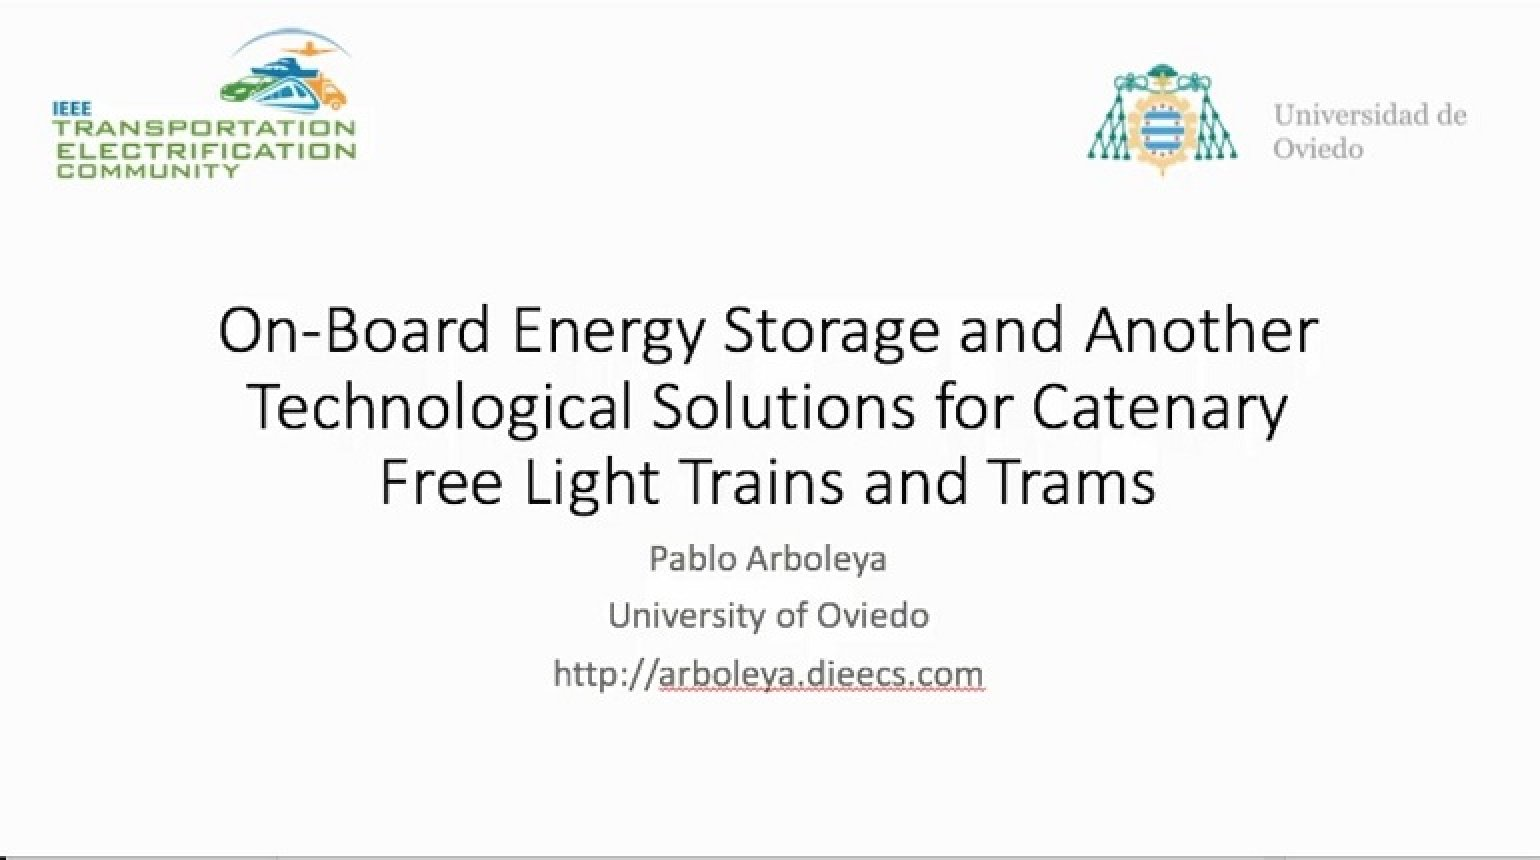 Video - On-Board Energy Storage and Another Technological Solutions for Catenary Free Light Trains and Trams